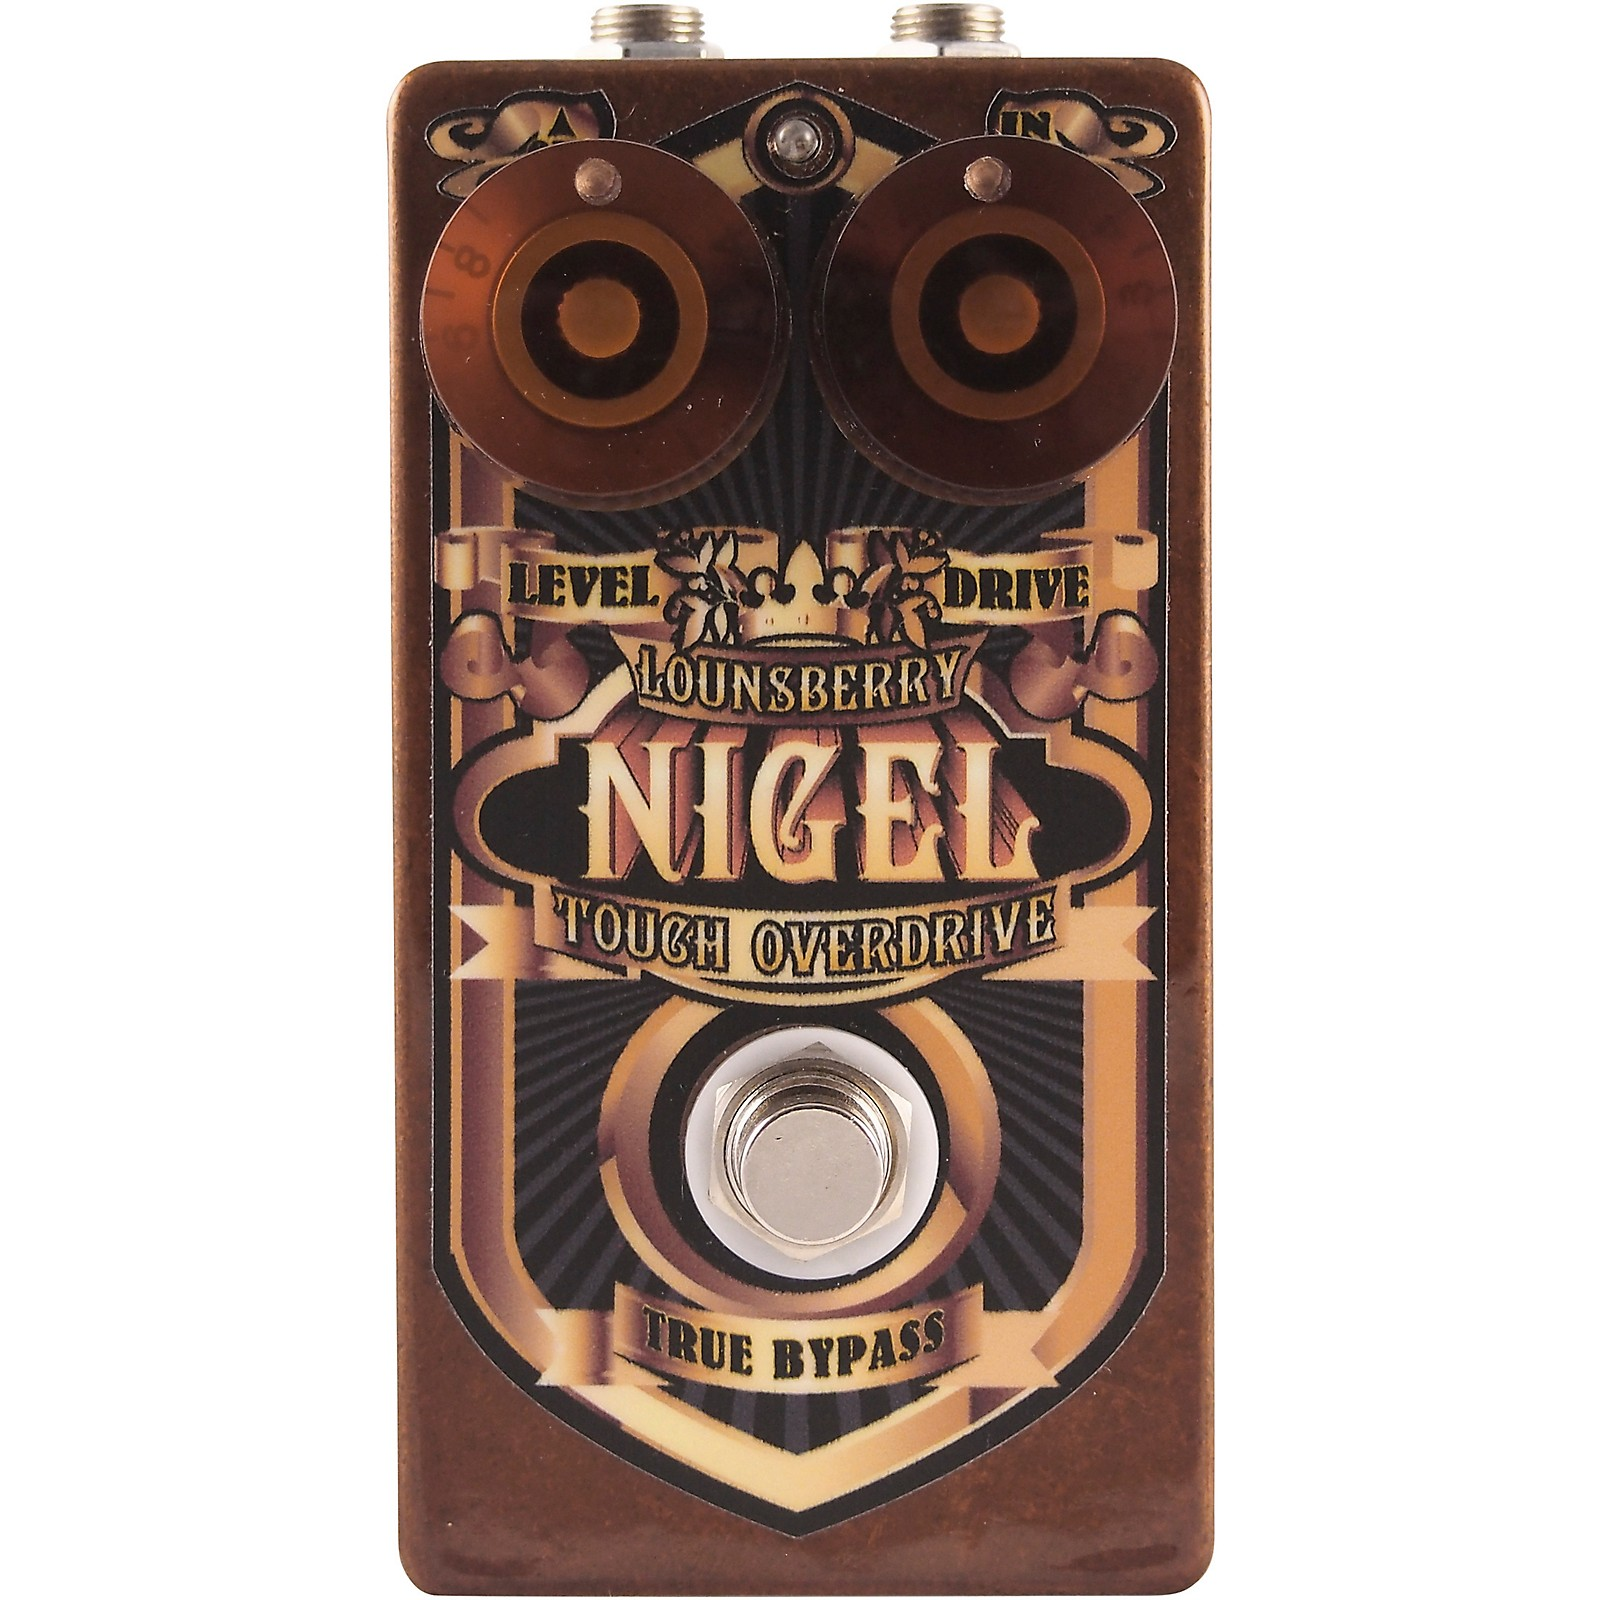 Lounsberry Pedals Nigel Overdrive Effects Pedal